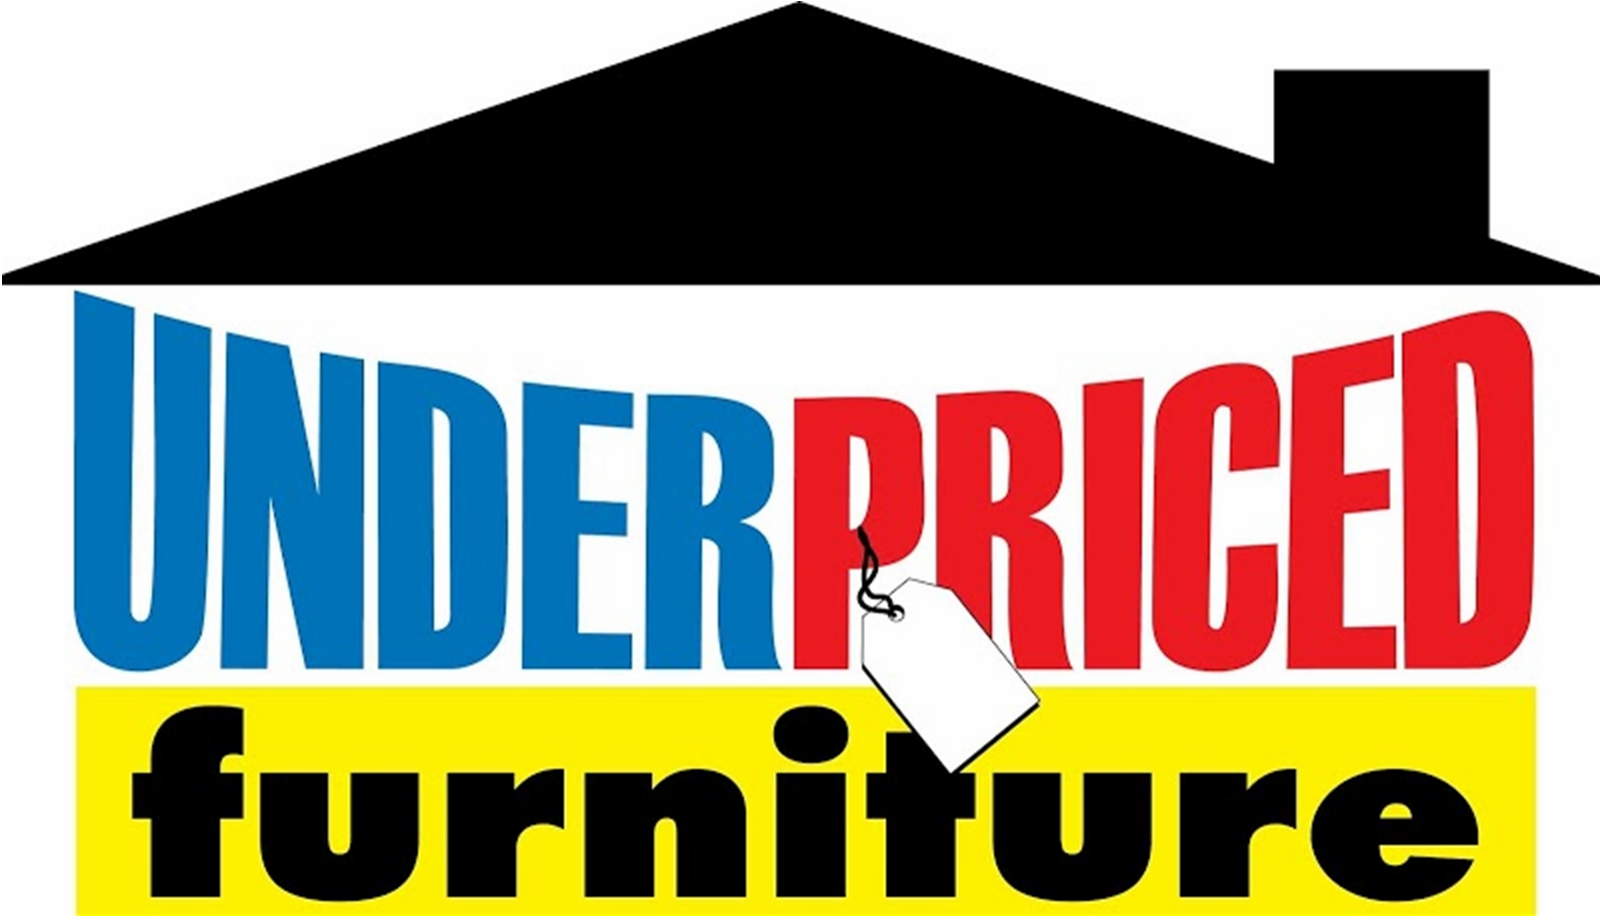 Underpriced Furniture